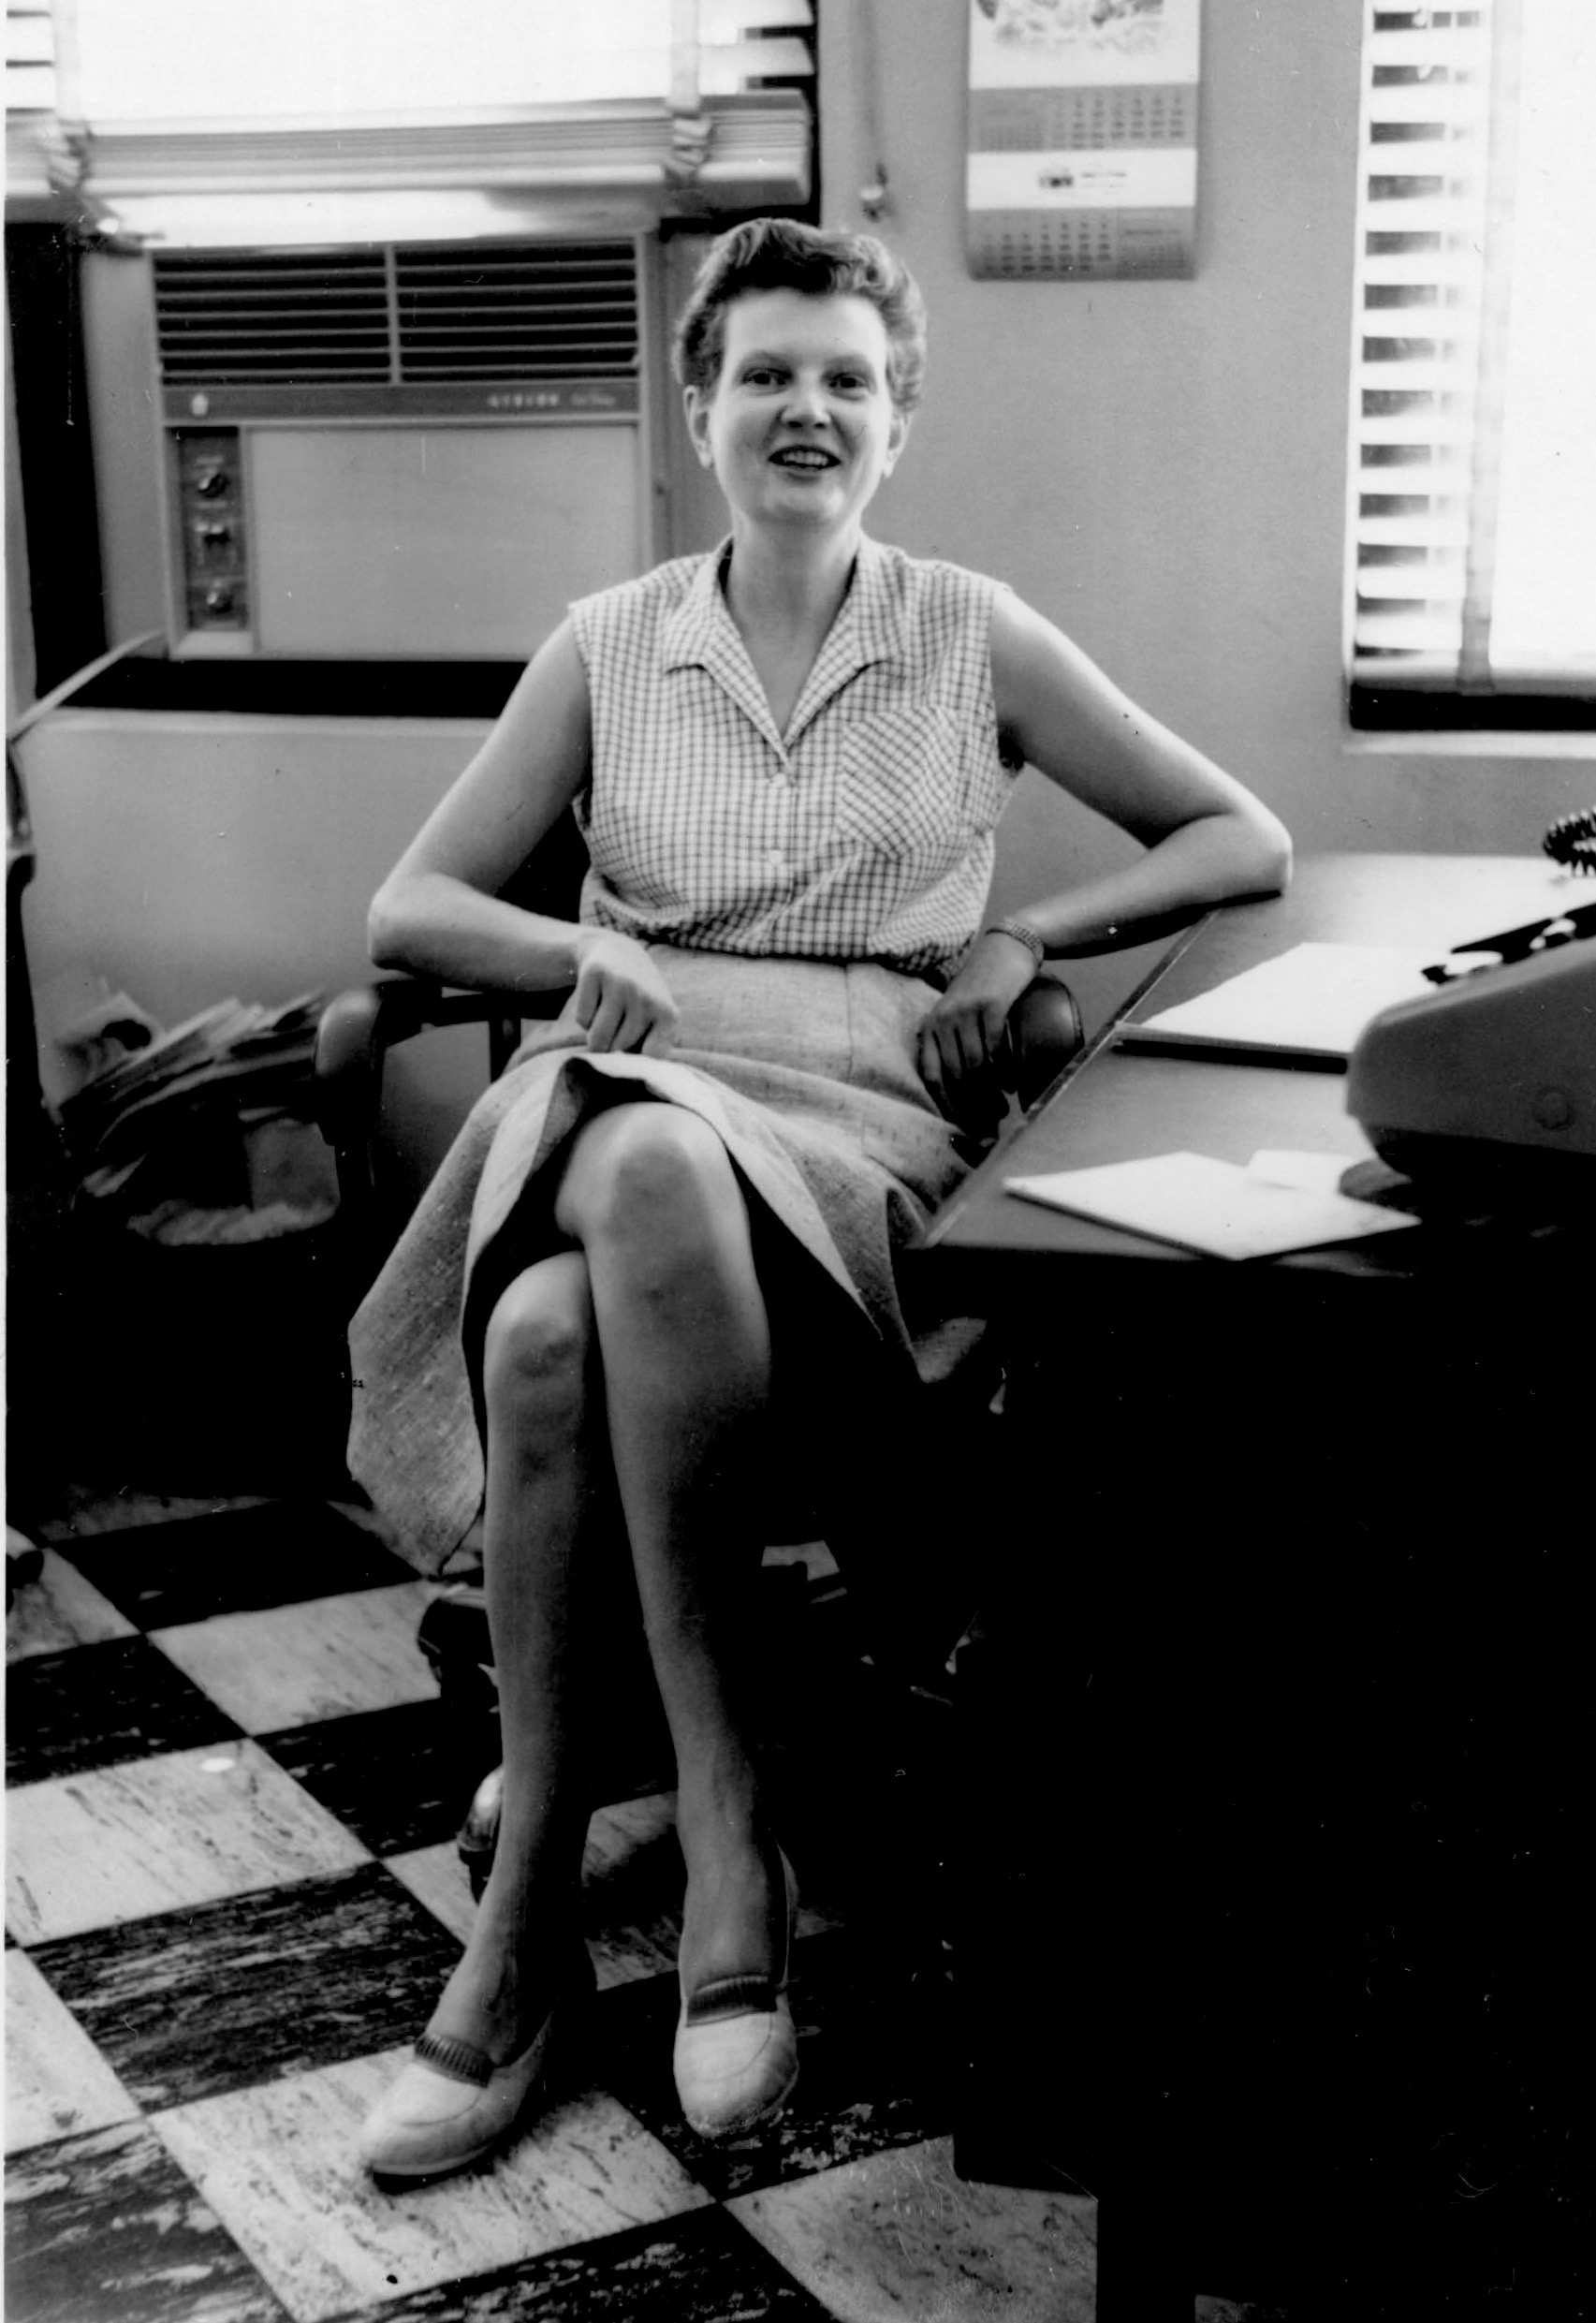 Alice Petersen here at work (probably later at GSL Corp.) She she was mouthing off a little to guys in the office when this pic was taken. photo from the Alice Petersen estate collection digitized by www.Evalogue.Life - Tell Your Story, in 2017